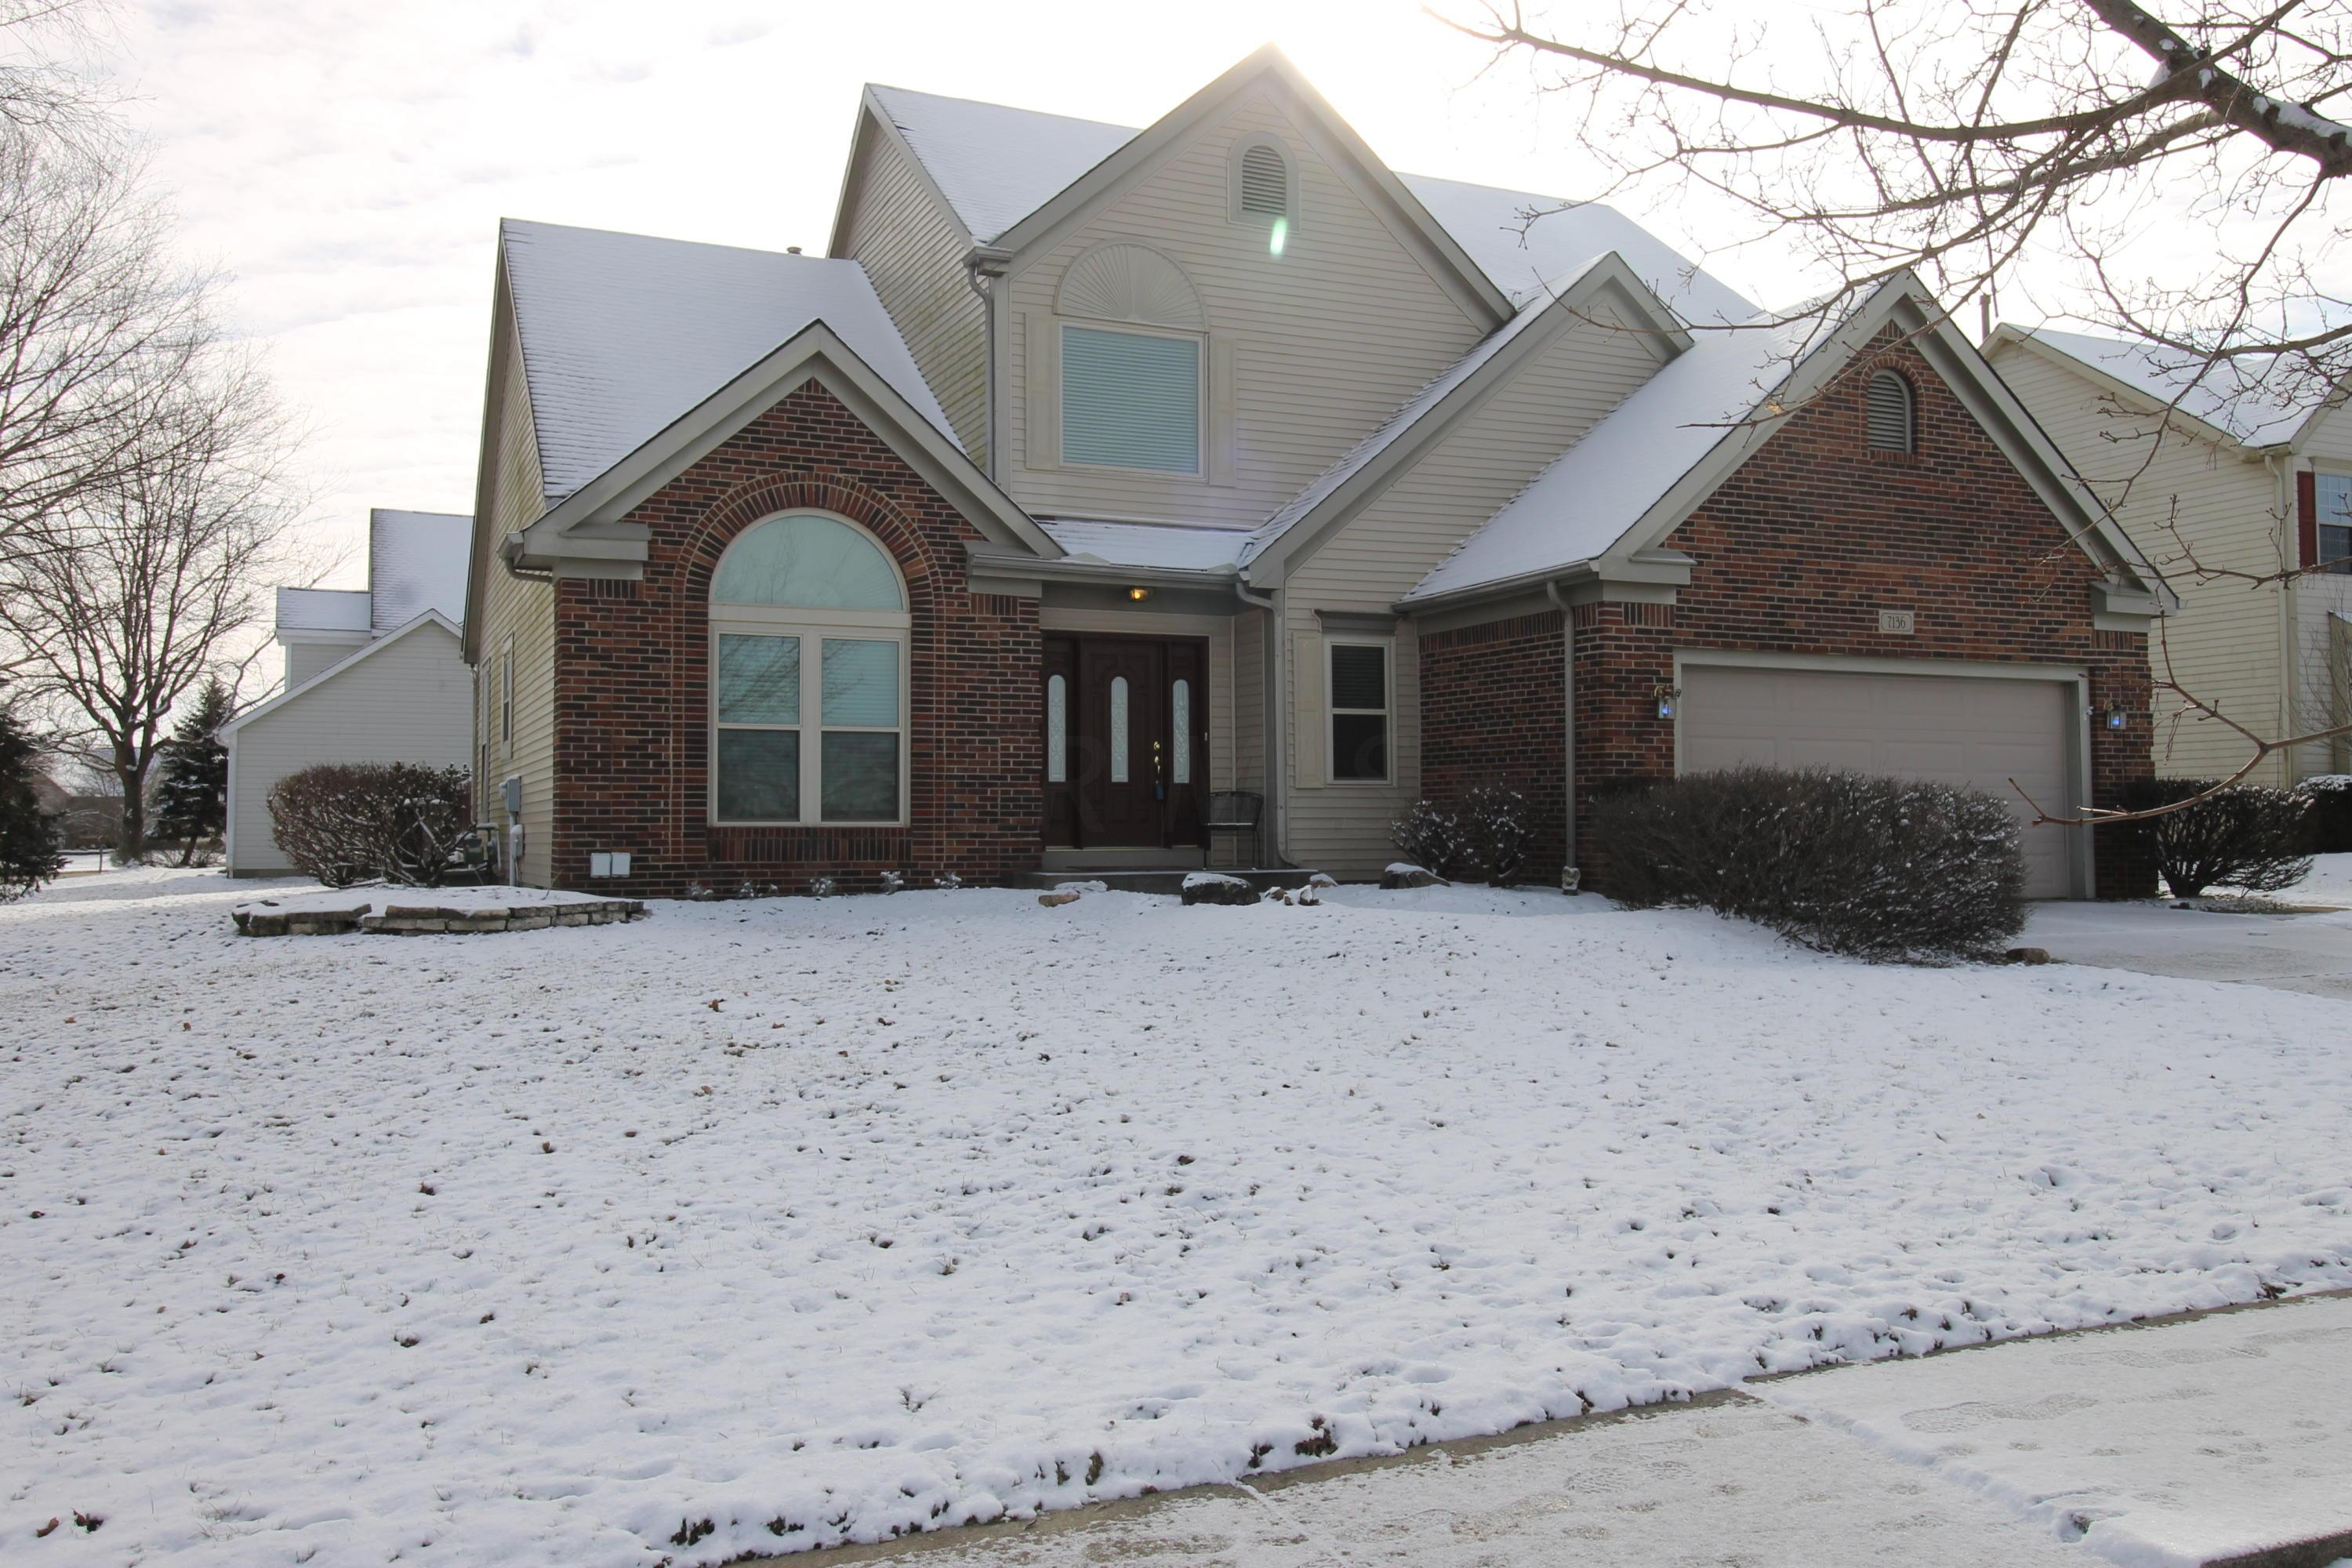 Home for sale at Sold: 7136 OLD CREEK LANE, CANAL WINCHESTER, OH